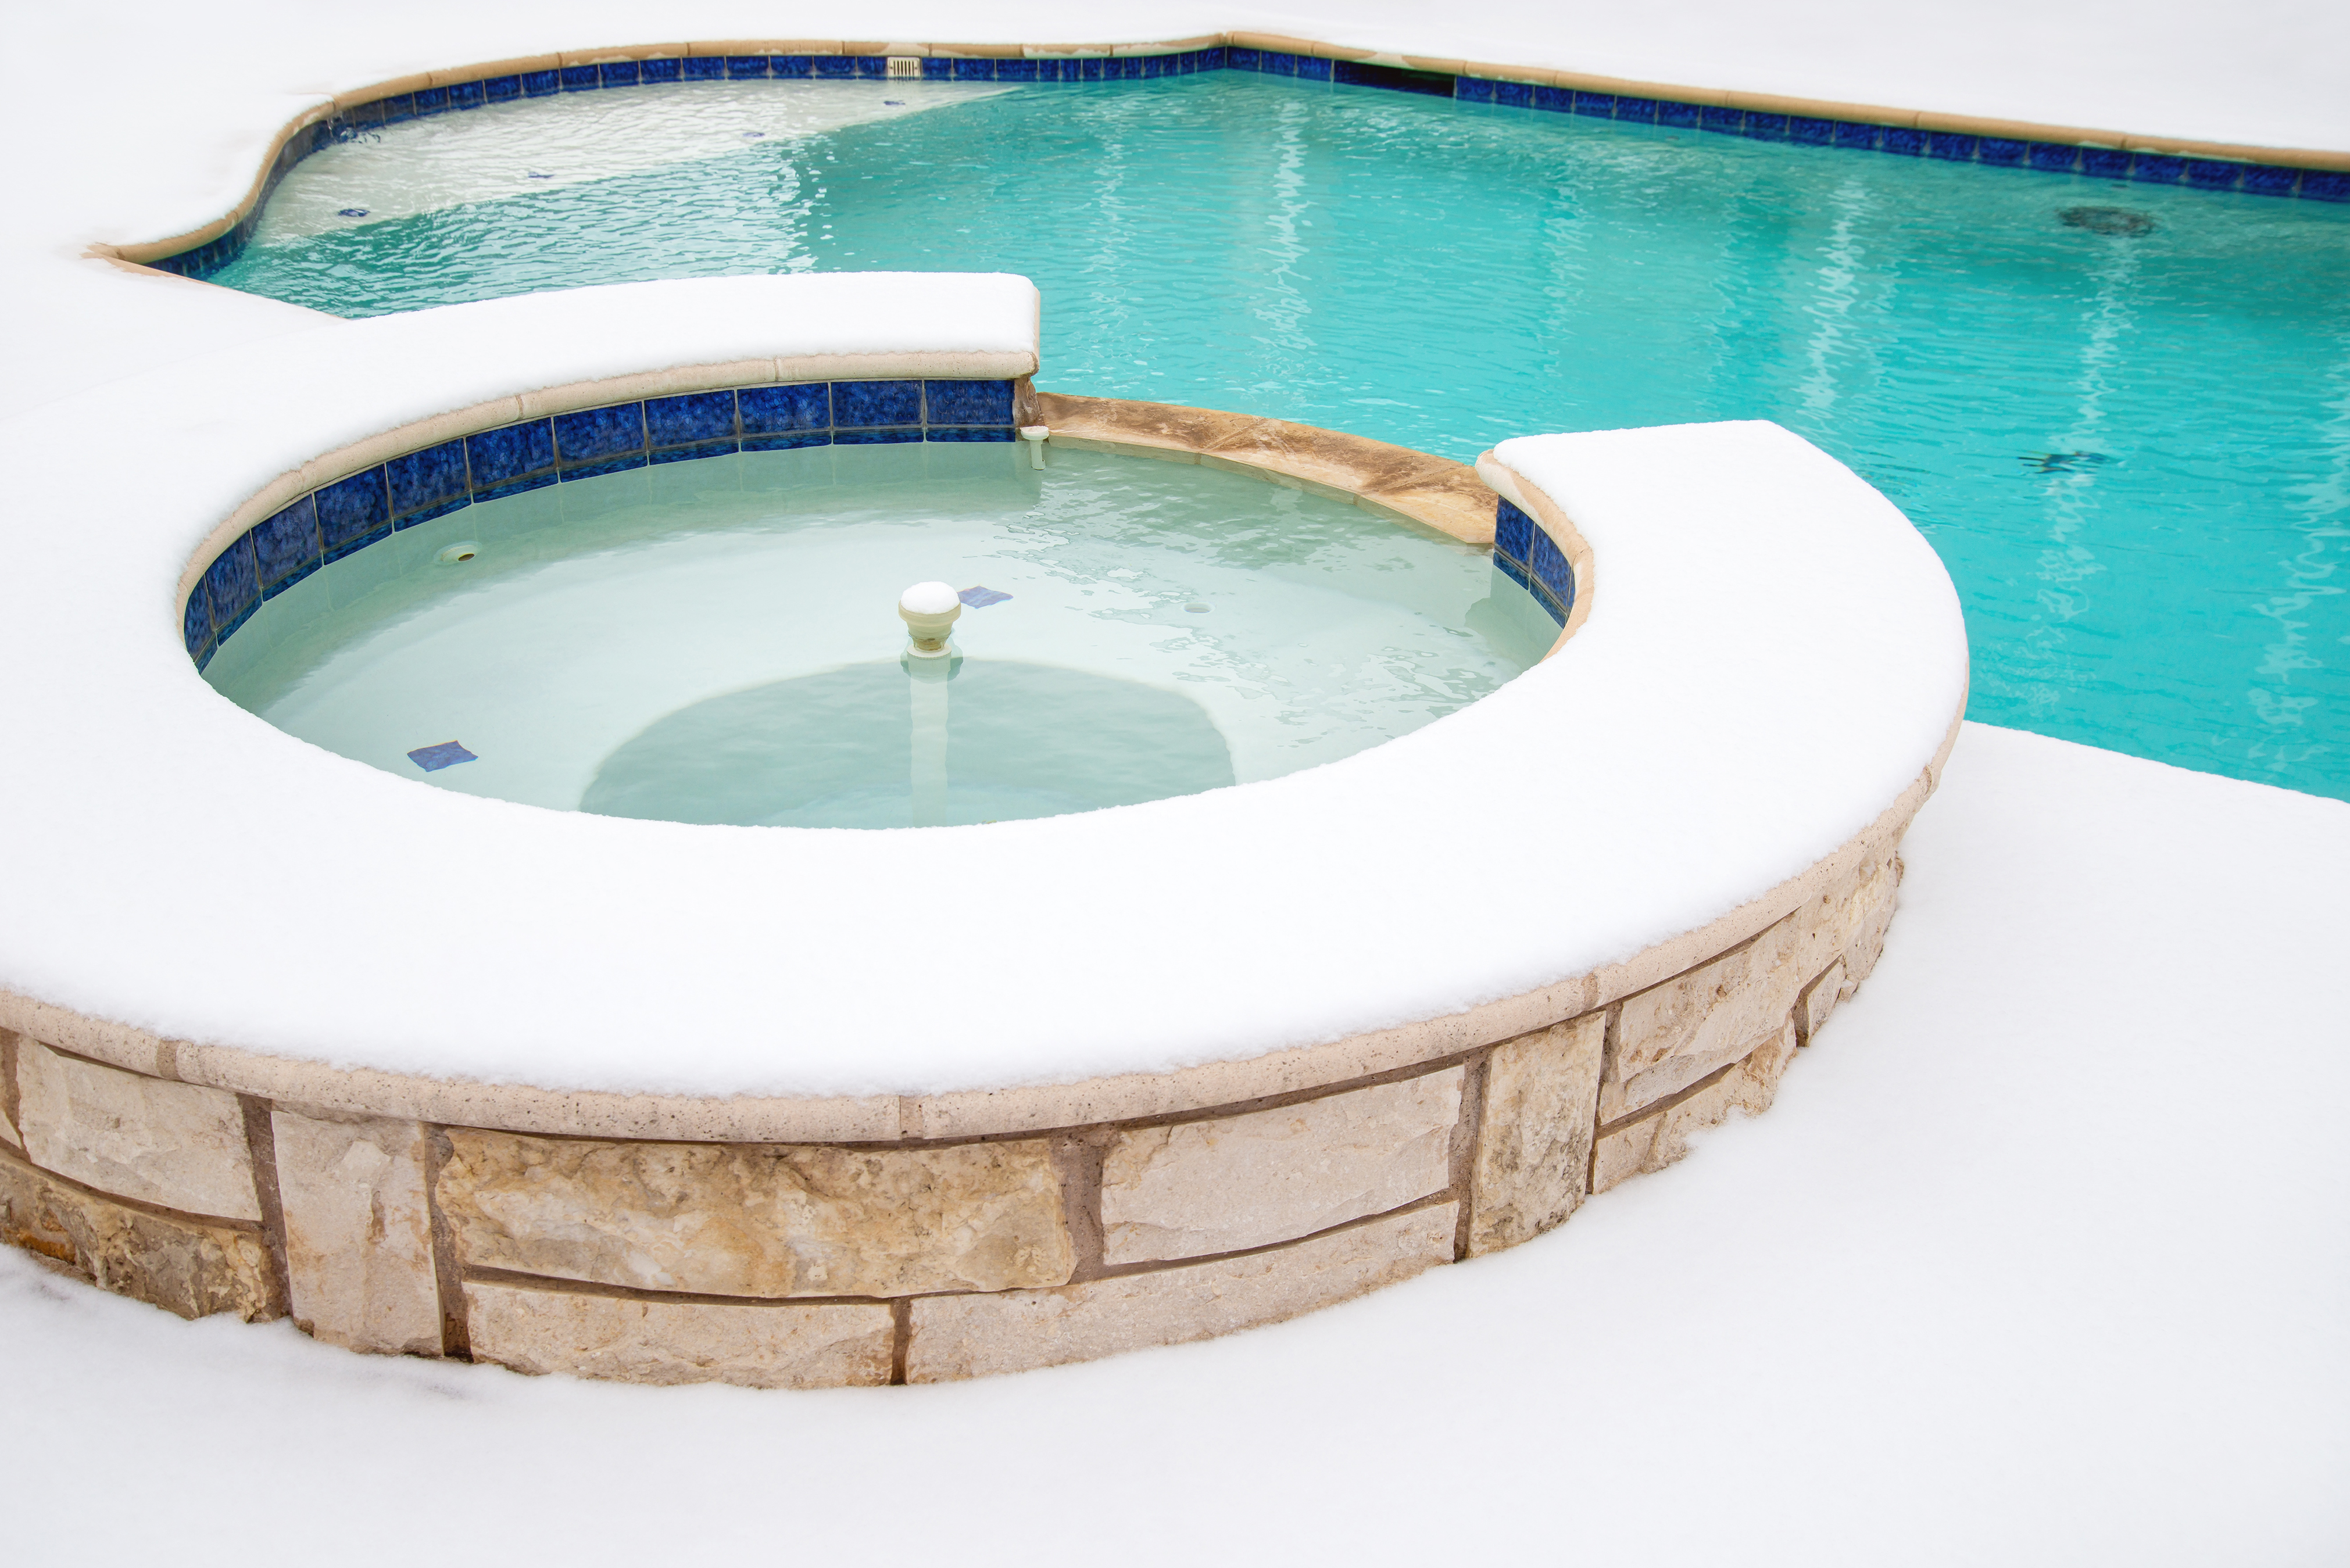 How much does a hot tub cost per month